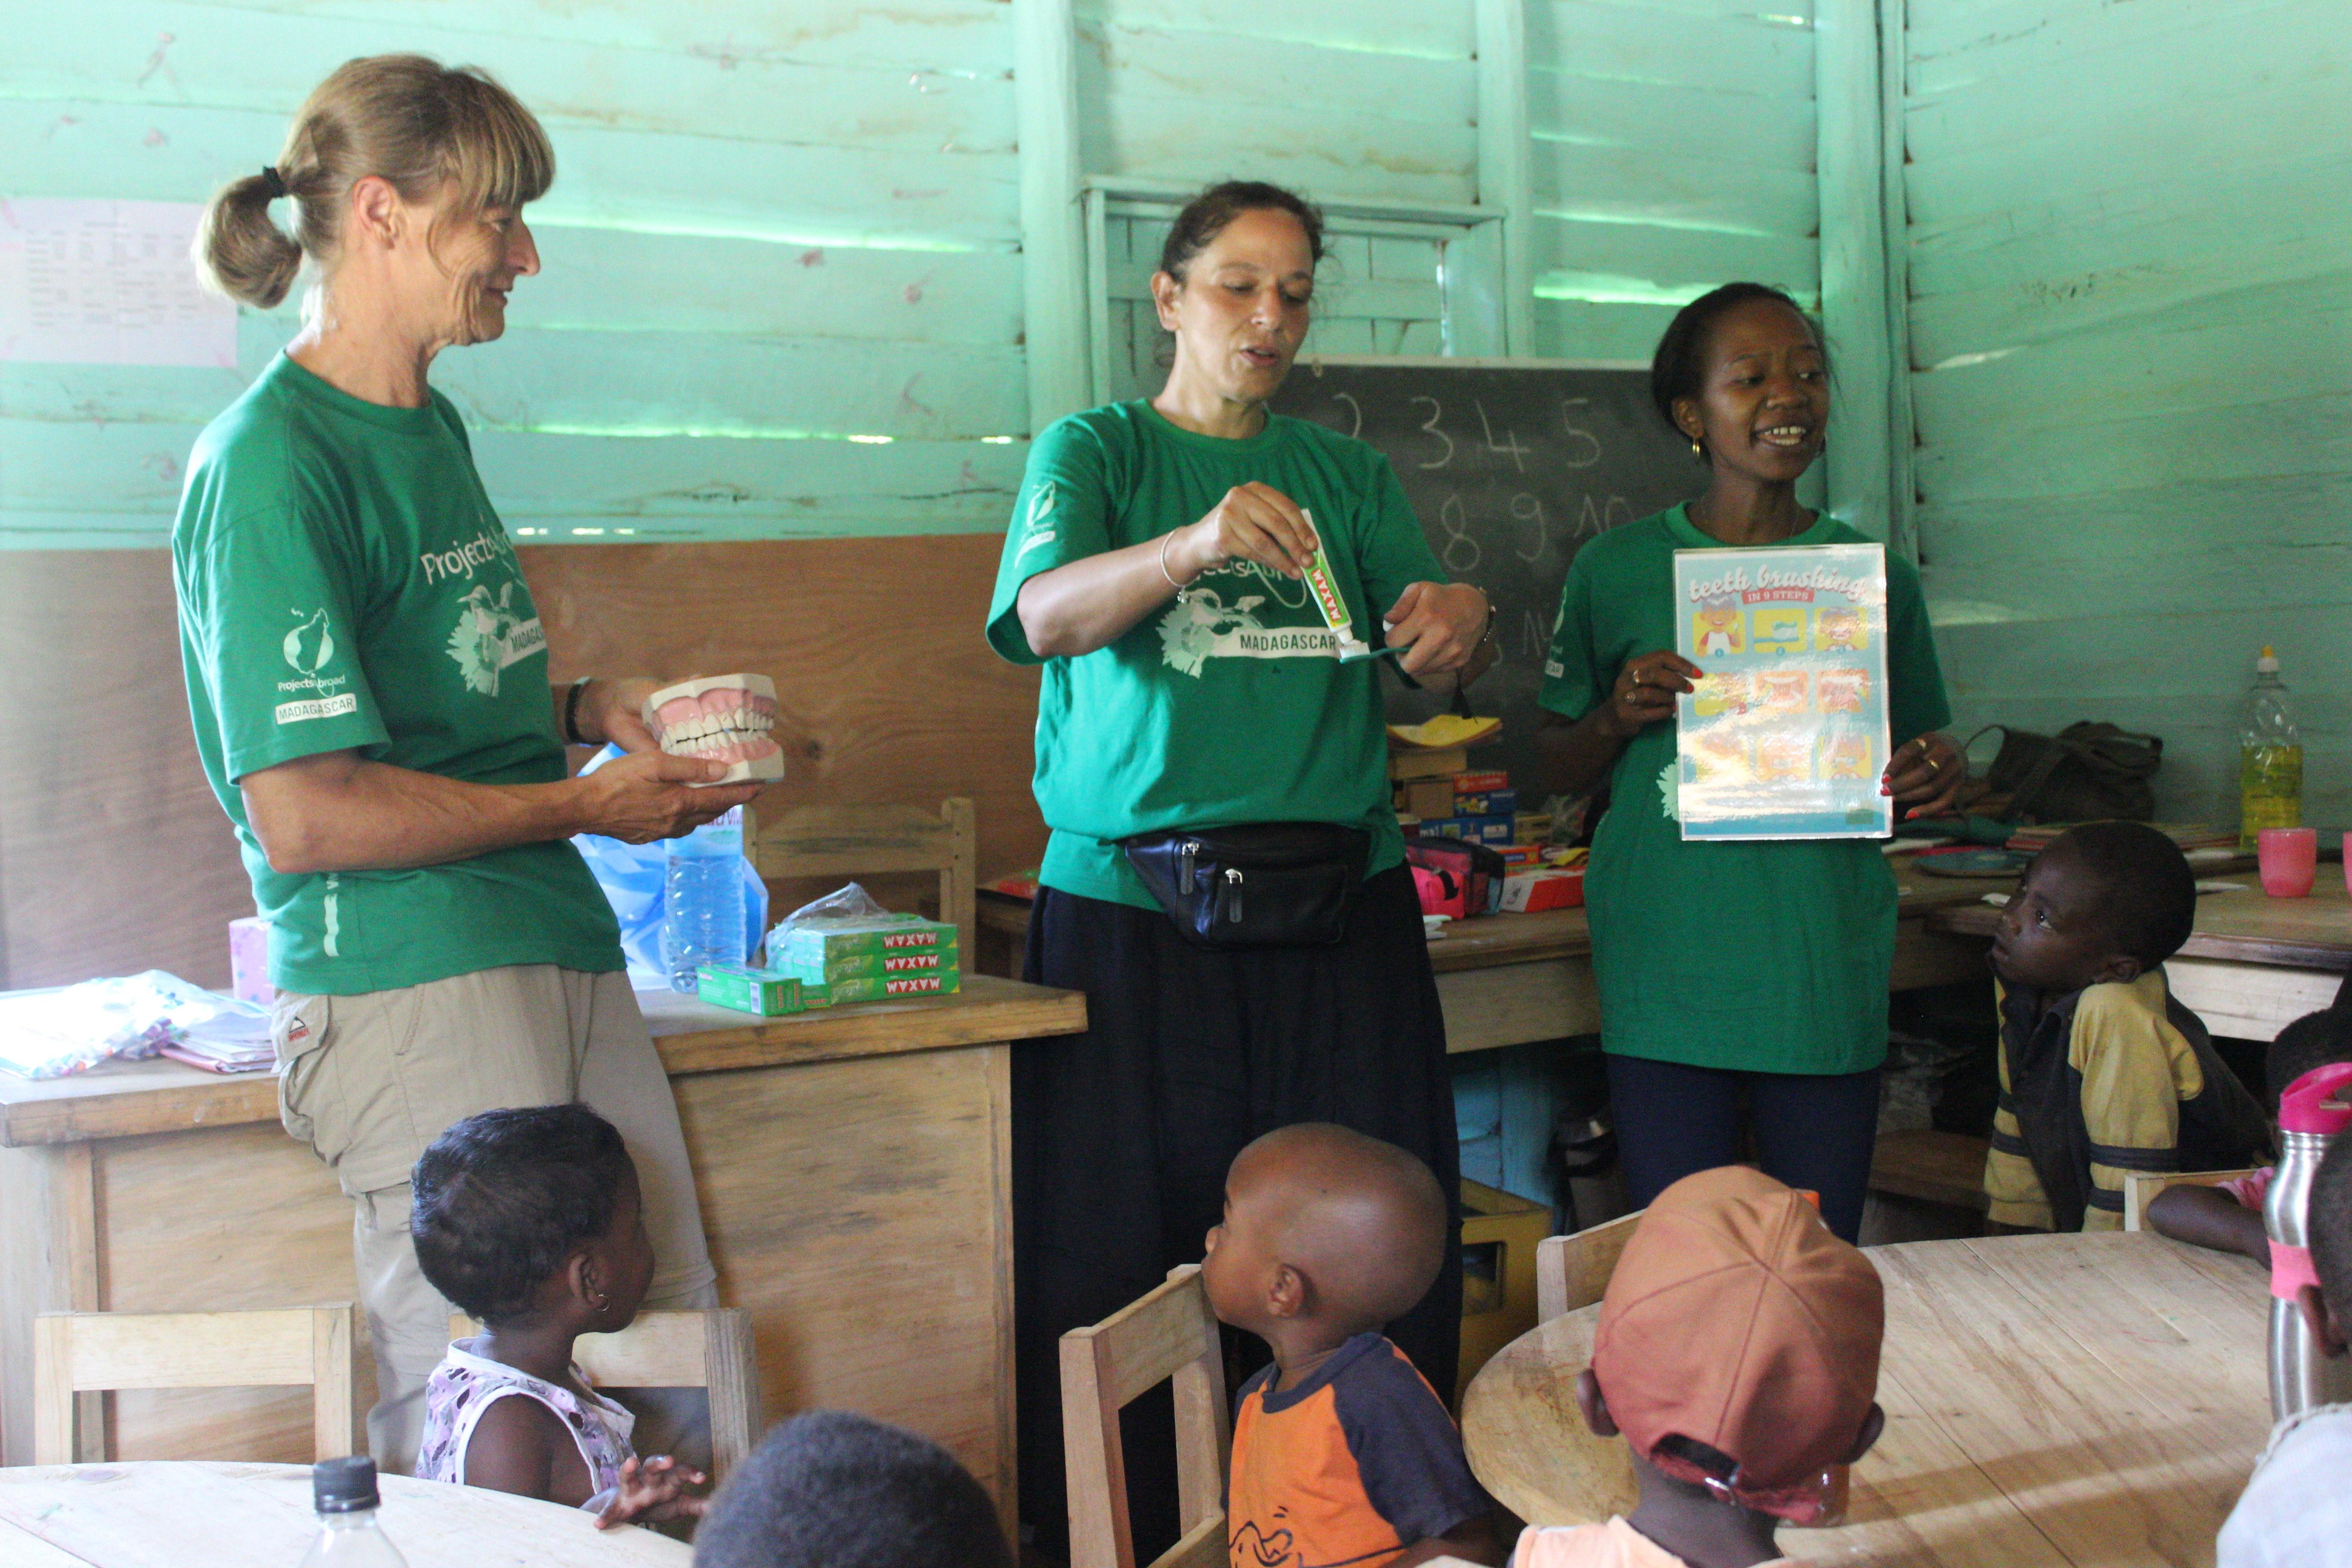 While learning French in Madagascar, students also have the option to volunteer on a Care Project and teach children.